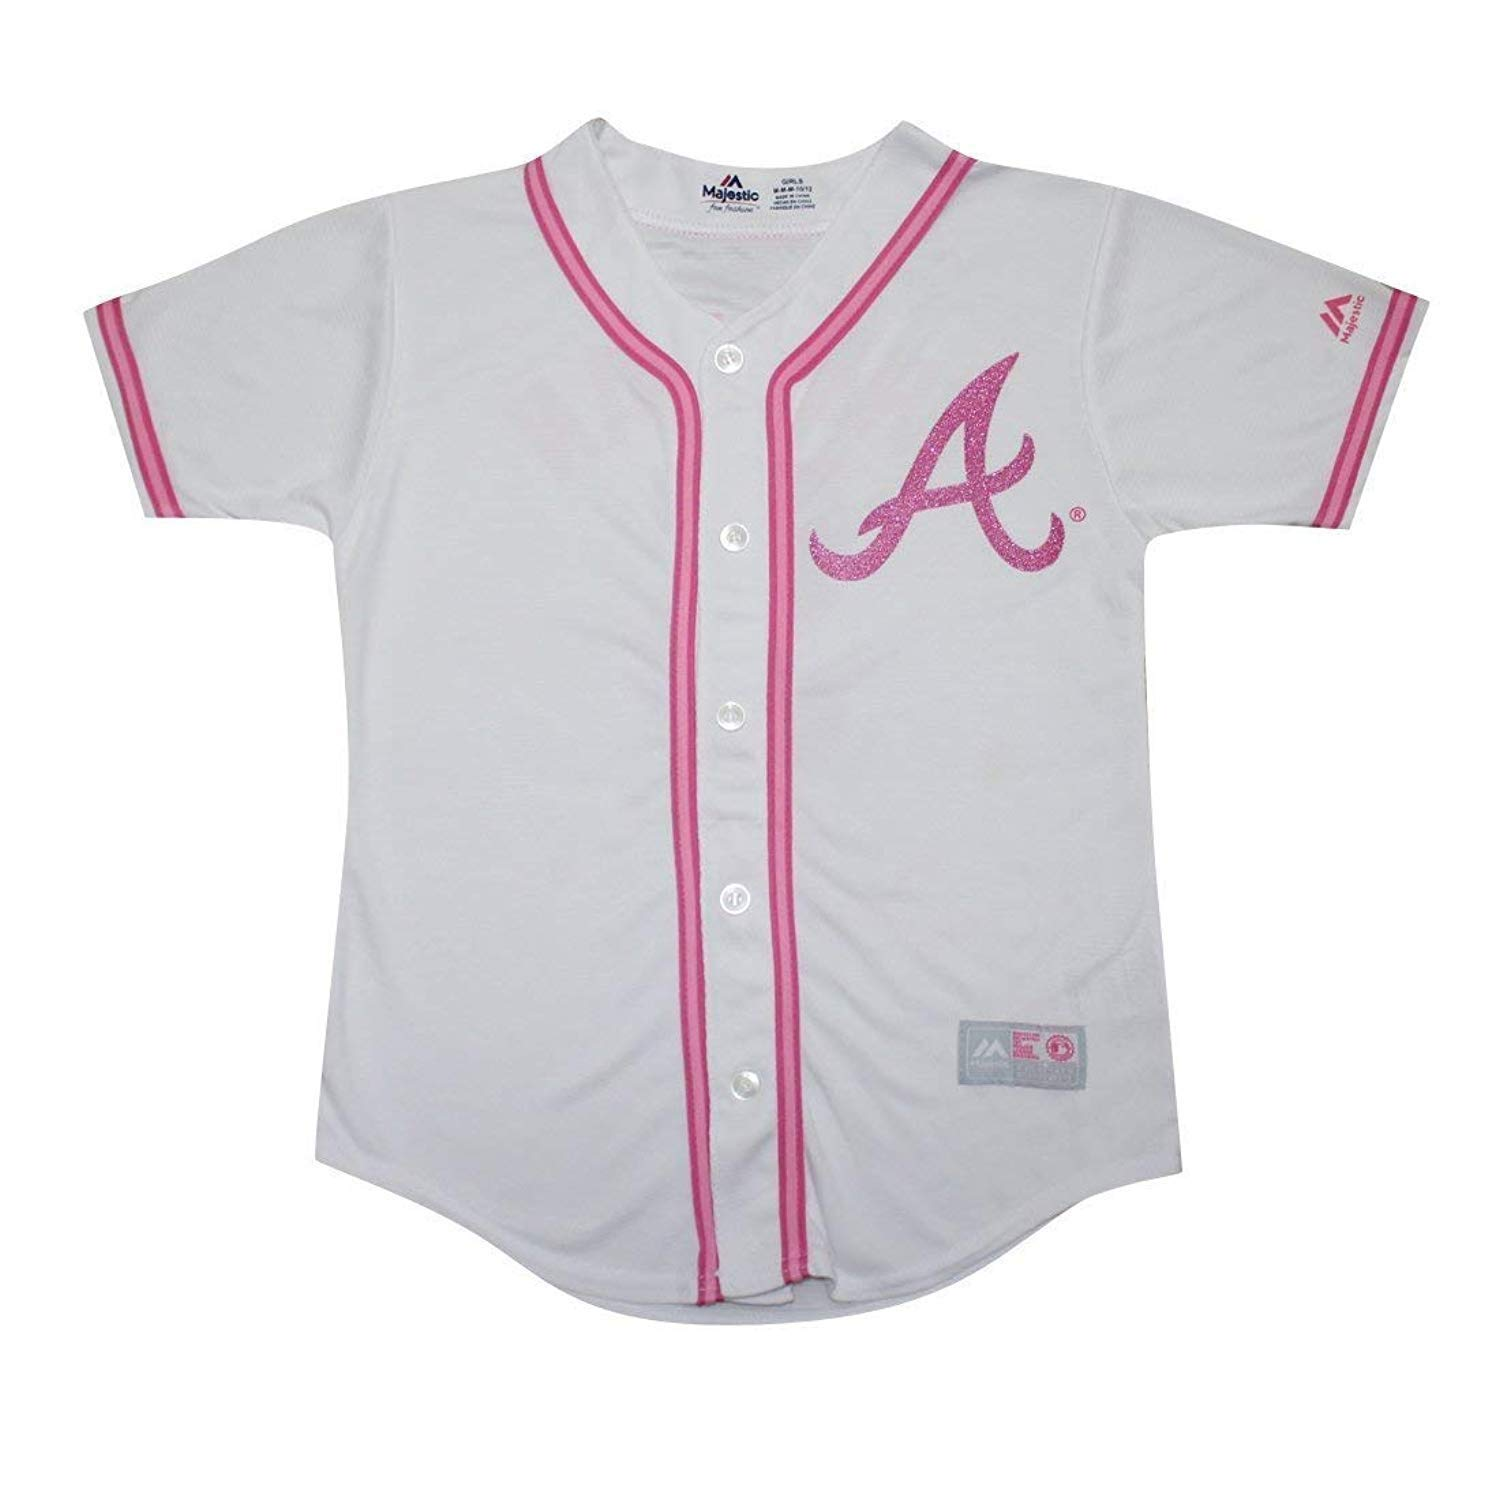 f38dbffb2 Get Quotations · Outerstuff Atlanta Braves Blank Girls Kids Youth White  Pink Cool Base Jersey